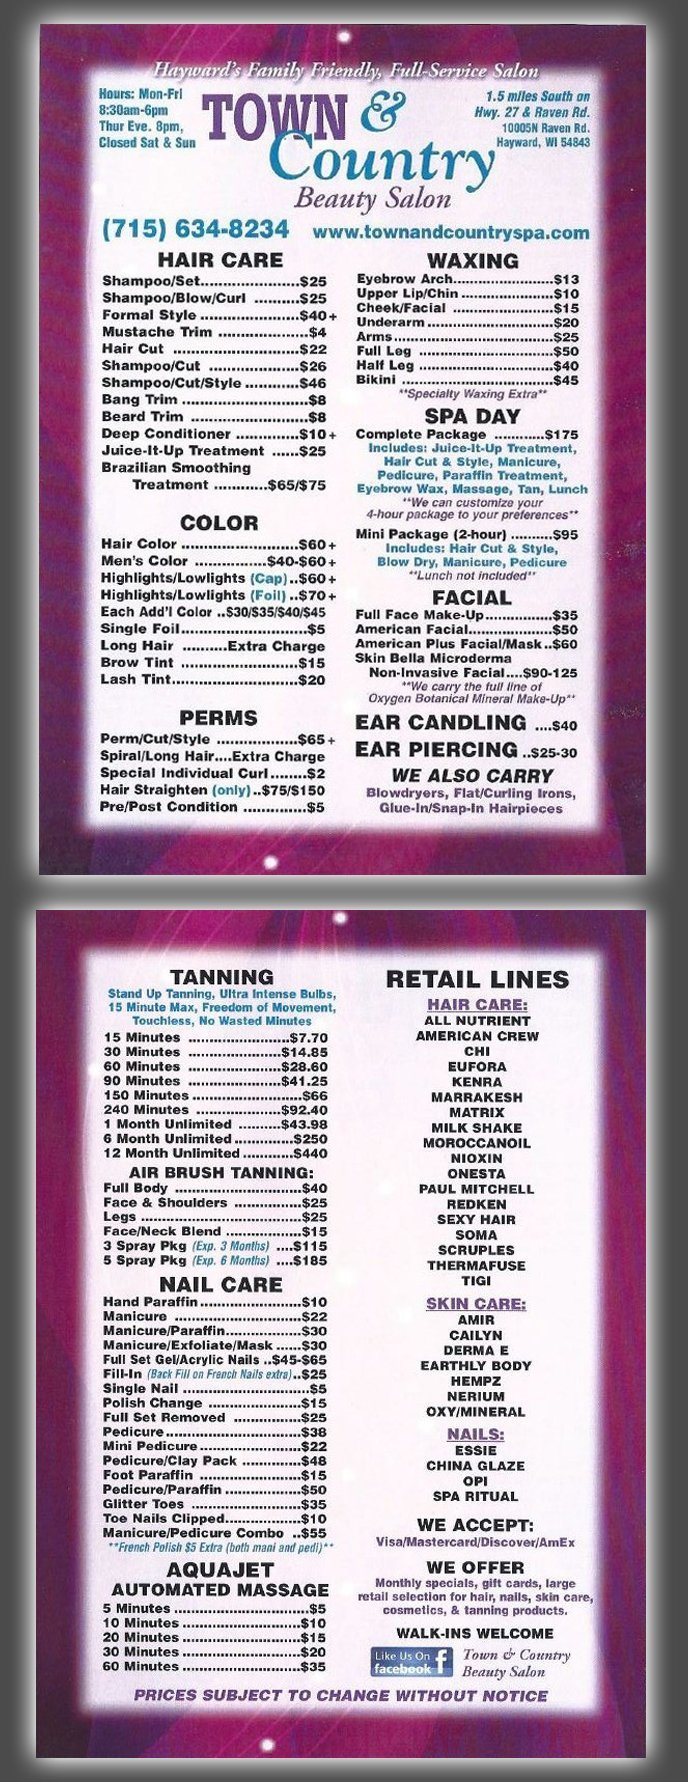 Services and Pricing   Town & Country Beauty Salon   Hayward, WI   715-634-8234